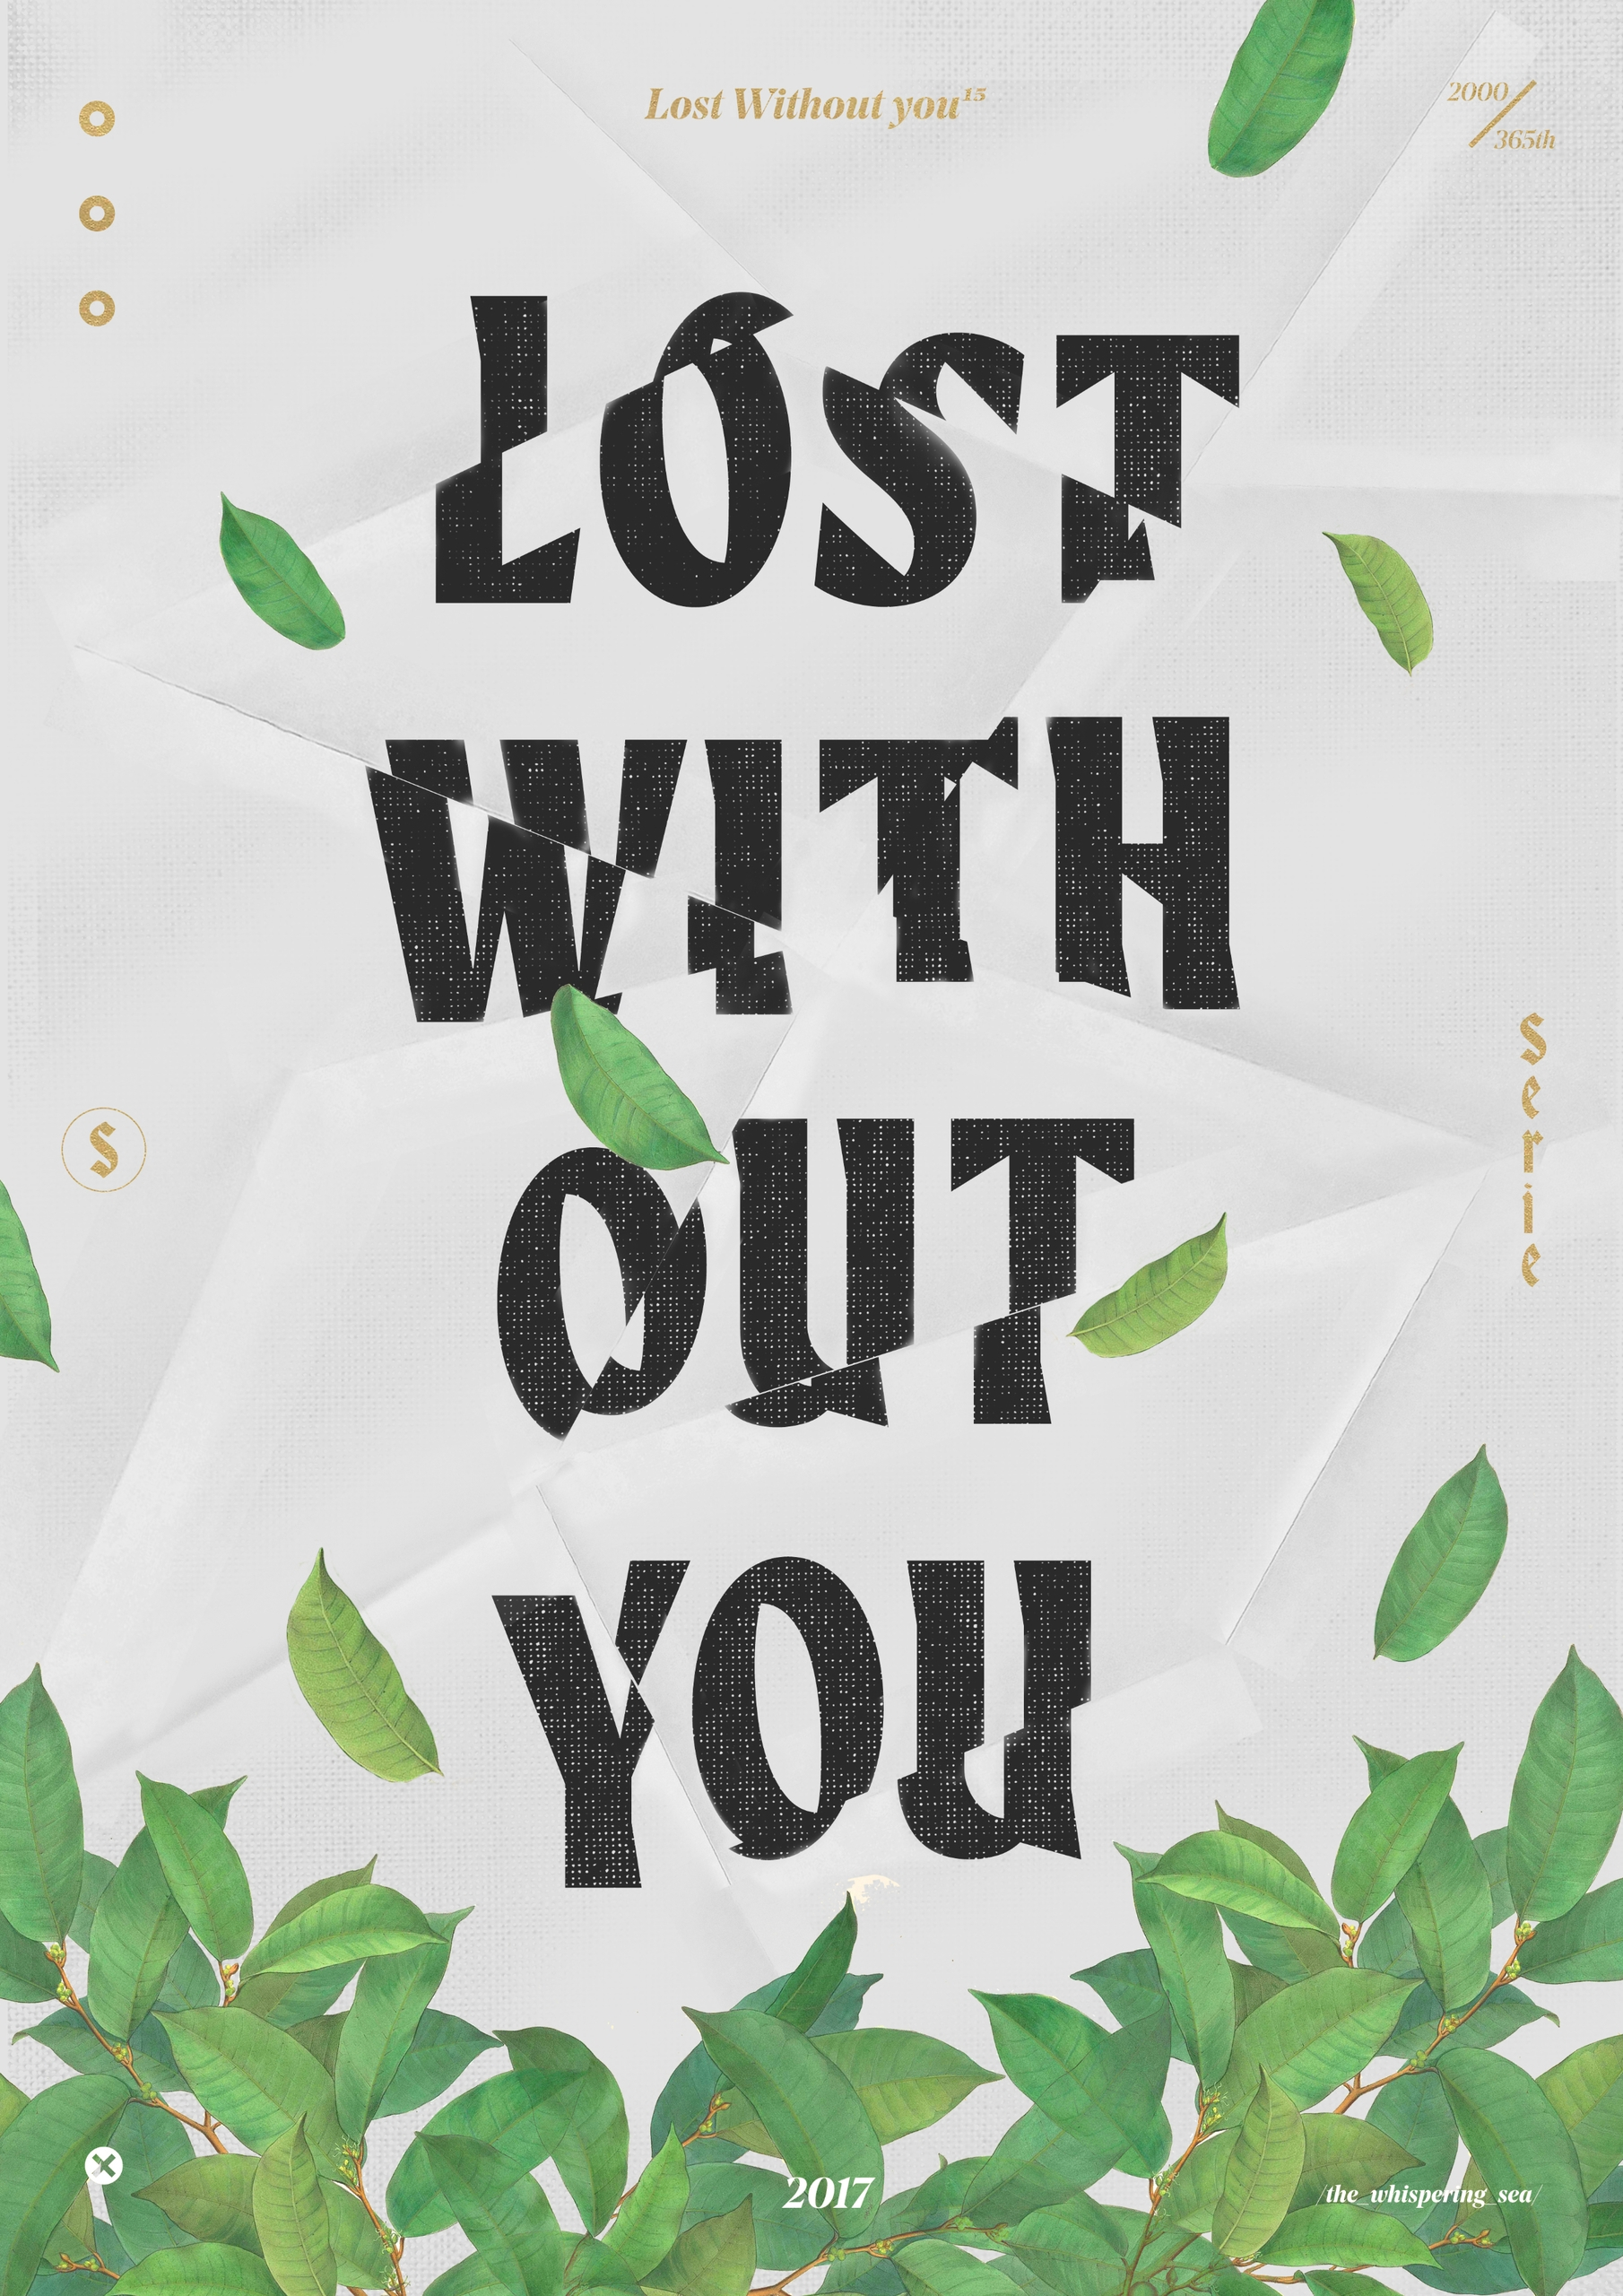 Lost - poster, nature, book, cover - torresmilka2004 | ello